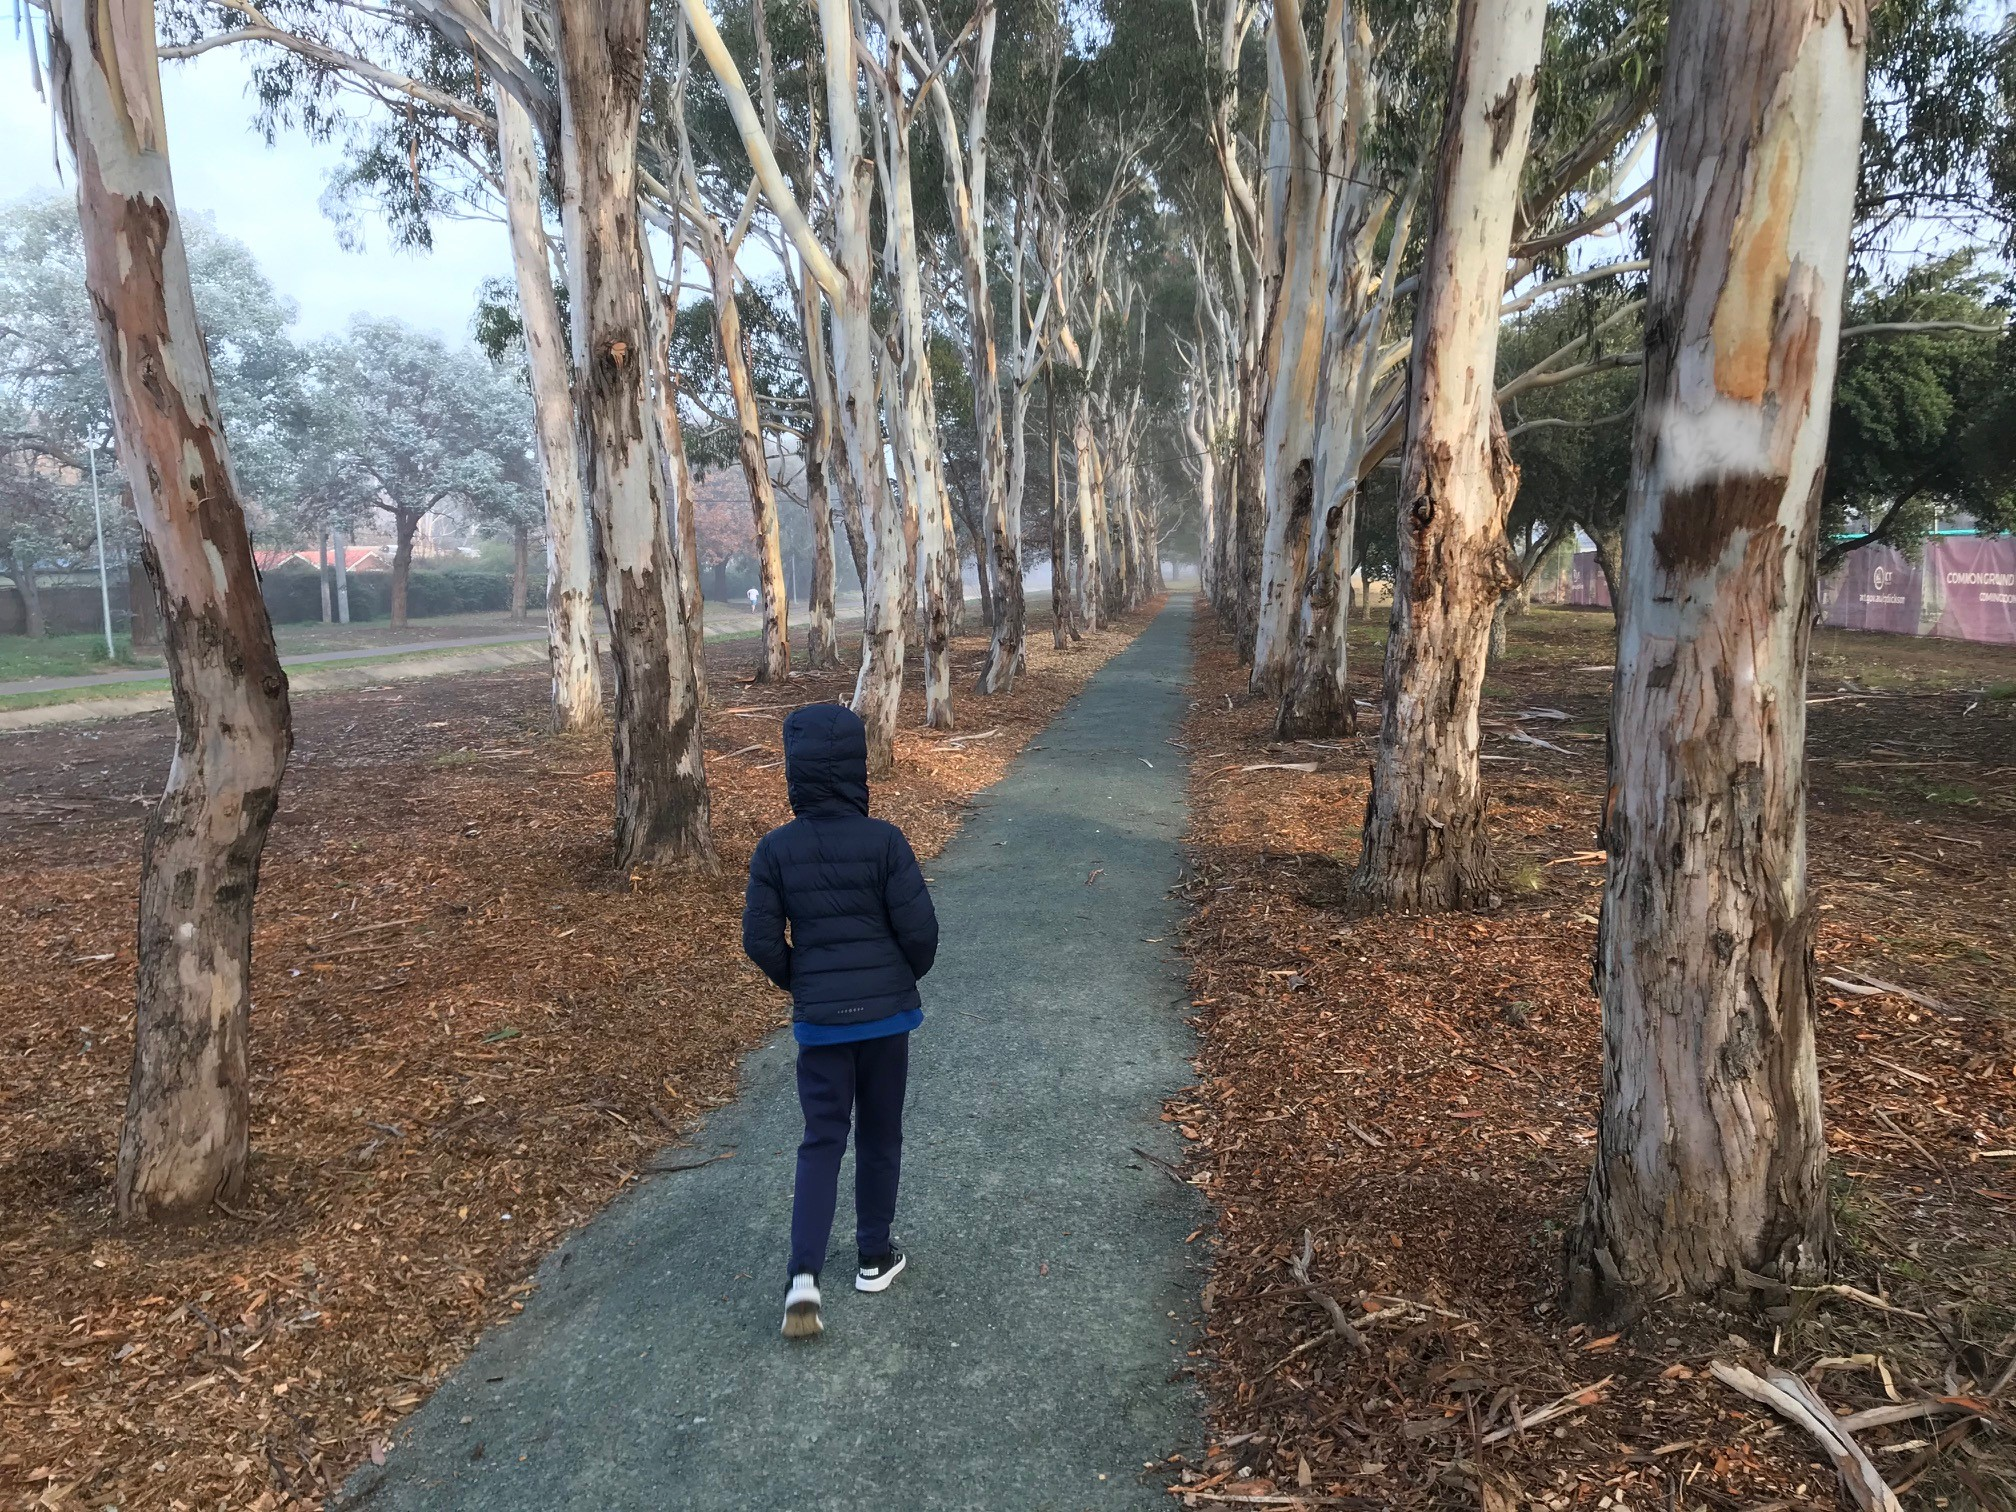 A young person walking in the fog on the new path